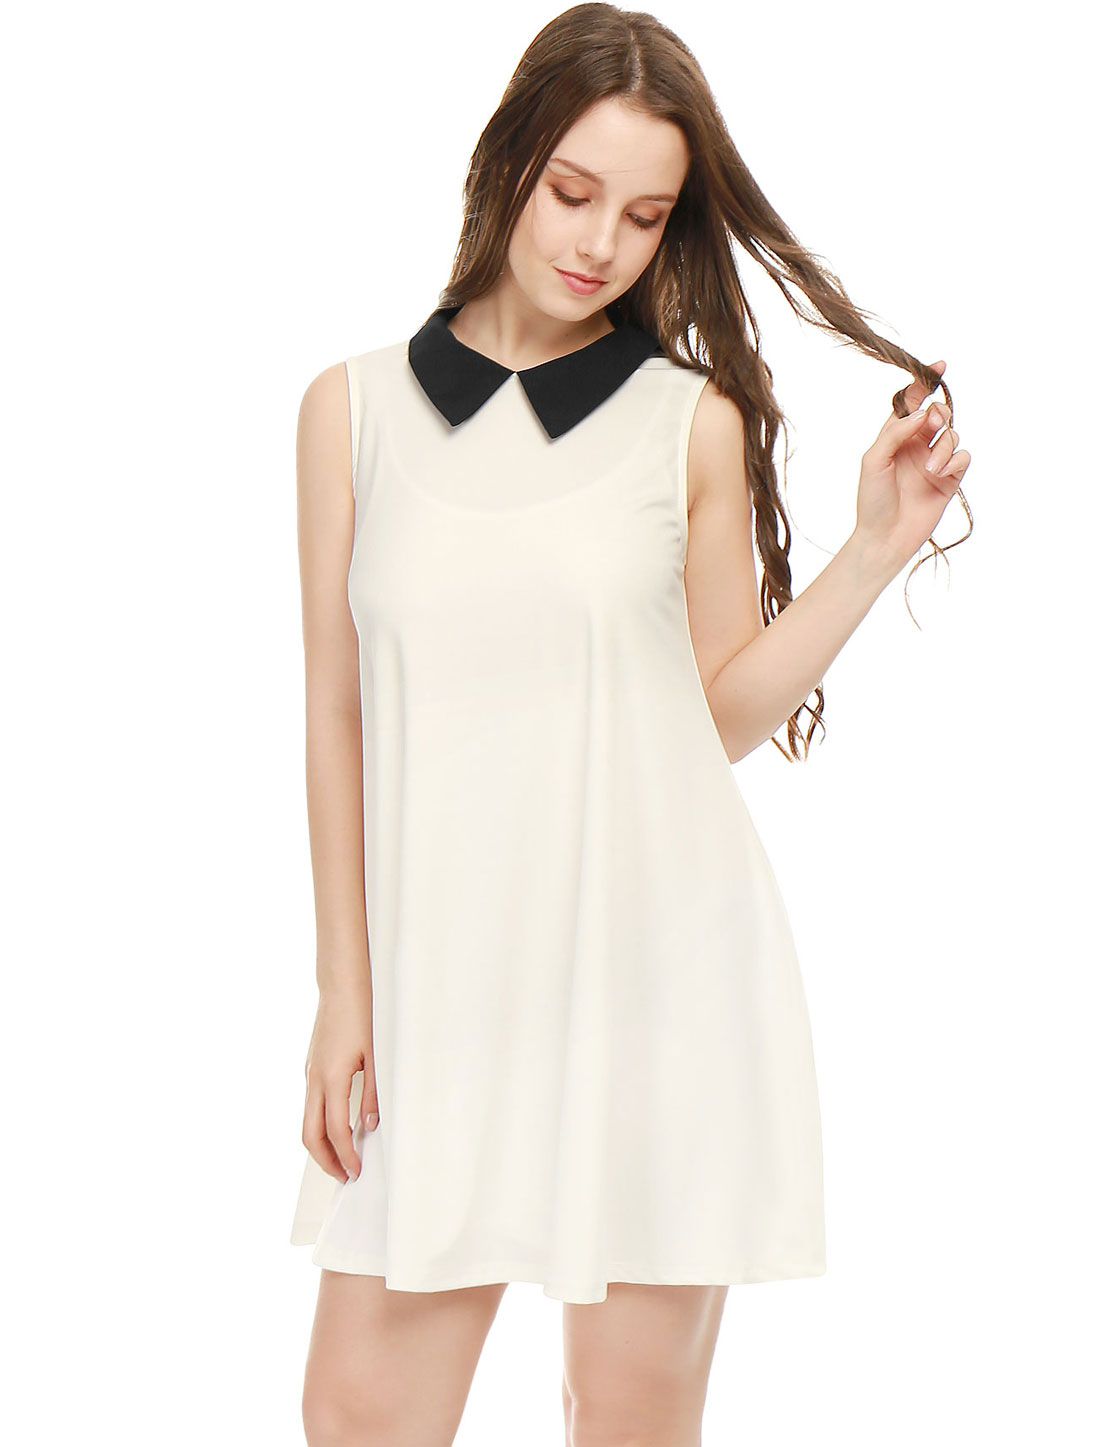 Women Contrast Color Peter Pan Collar Sleeveless Swing Dress White XL